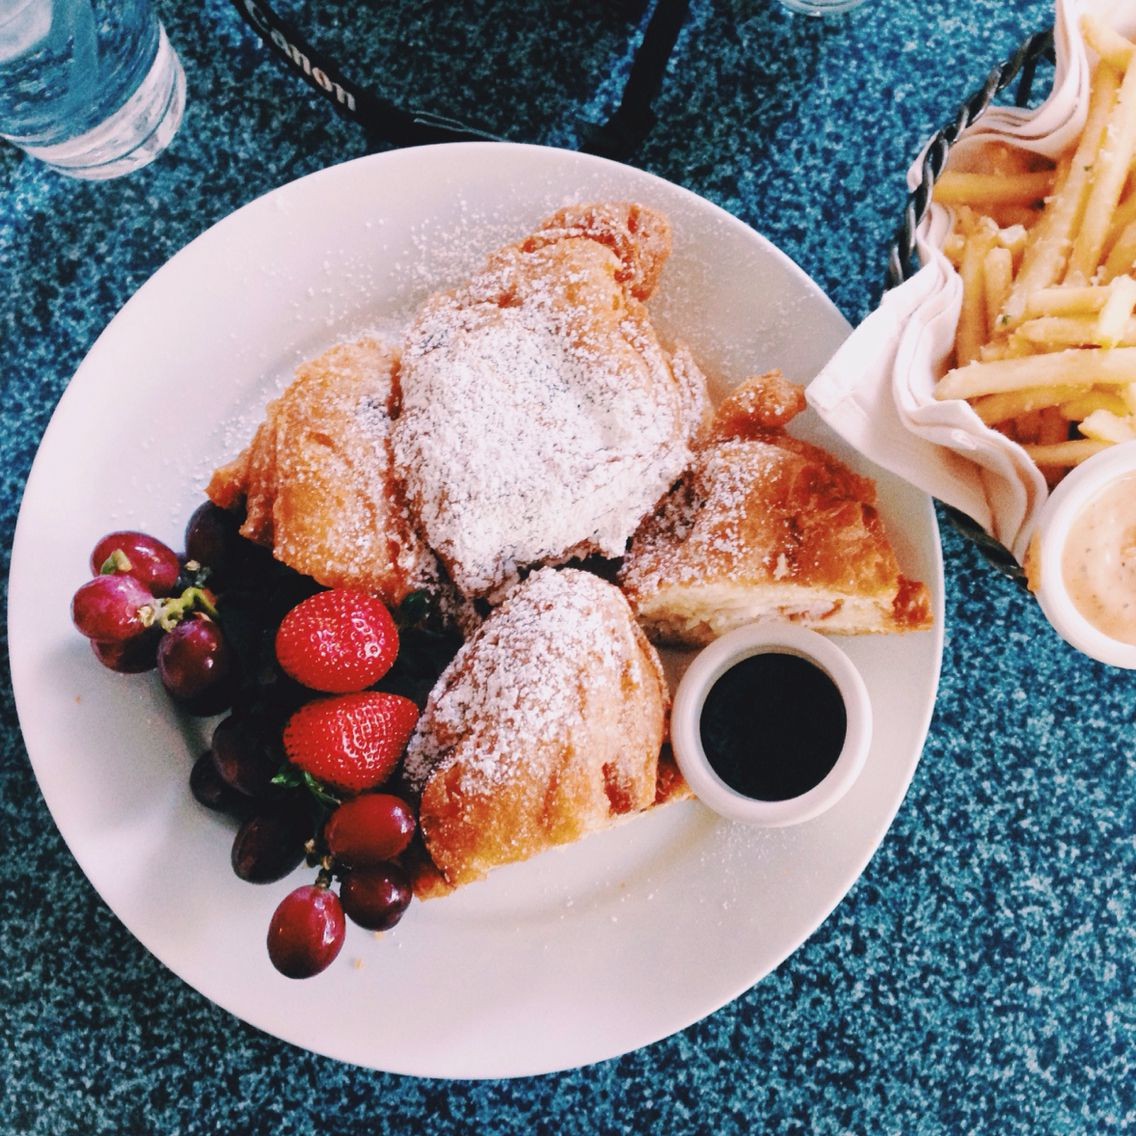 FOOD AT DISNEYLAND. Photography by Whitney Micaela VSCO GRID #whitneymicaelaphoto